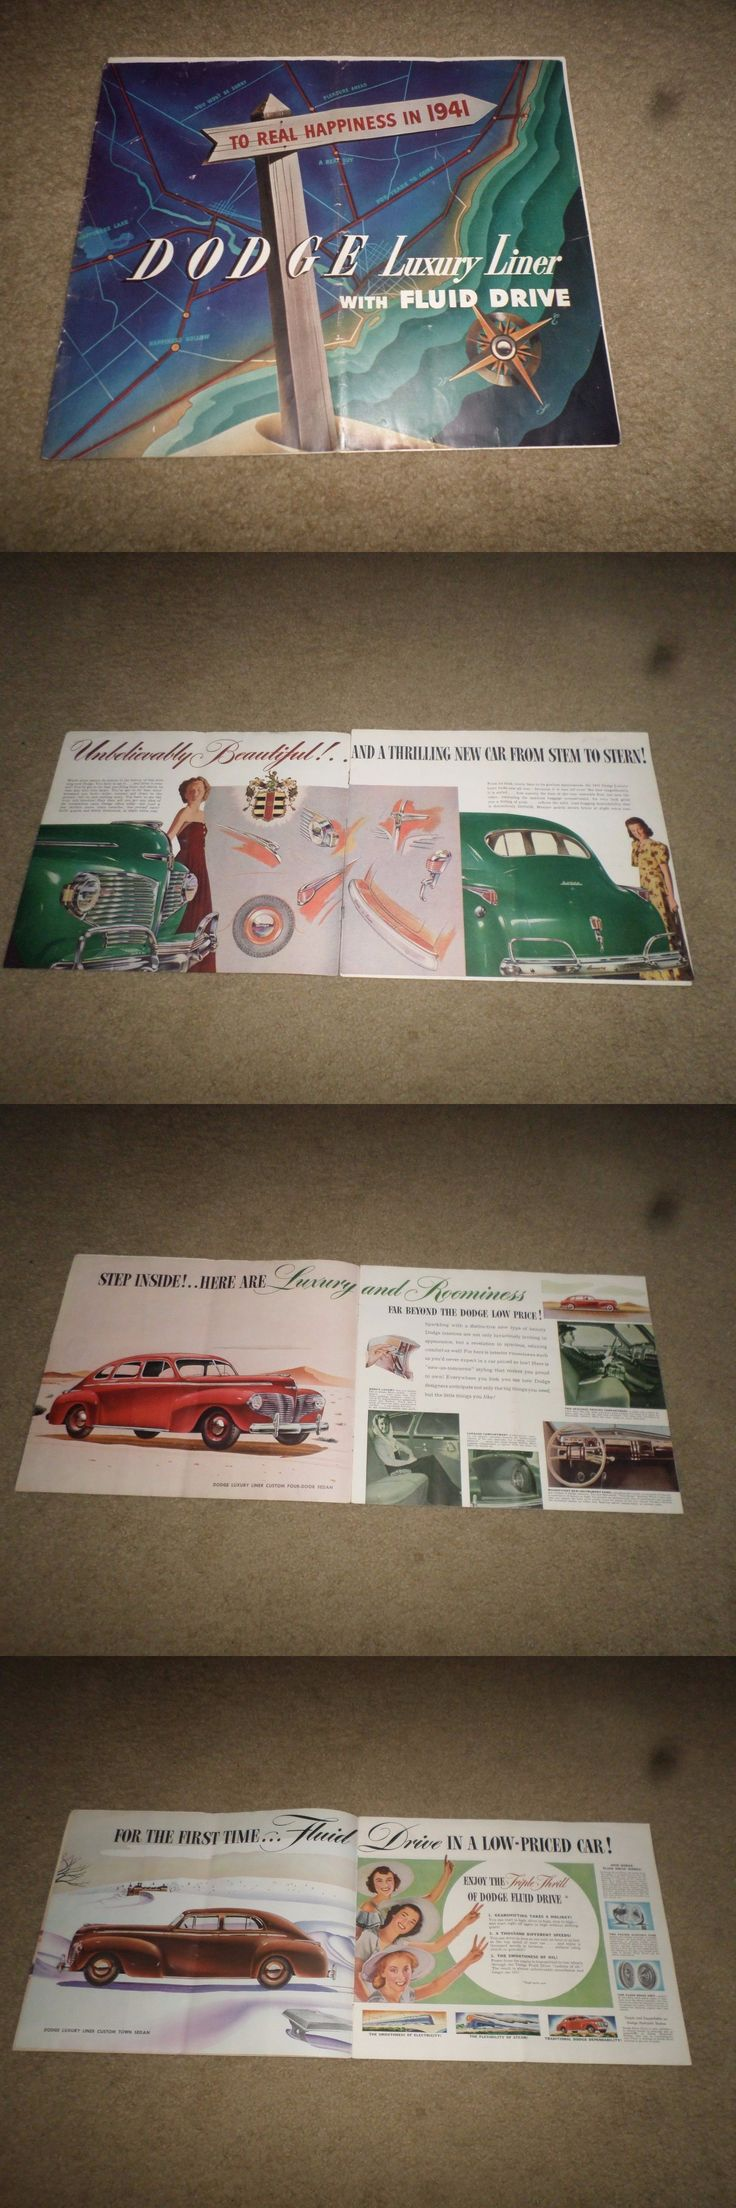 Luxury cars e 1941 dodge luxury liner car dealer sales brochure buy